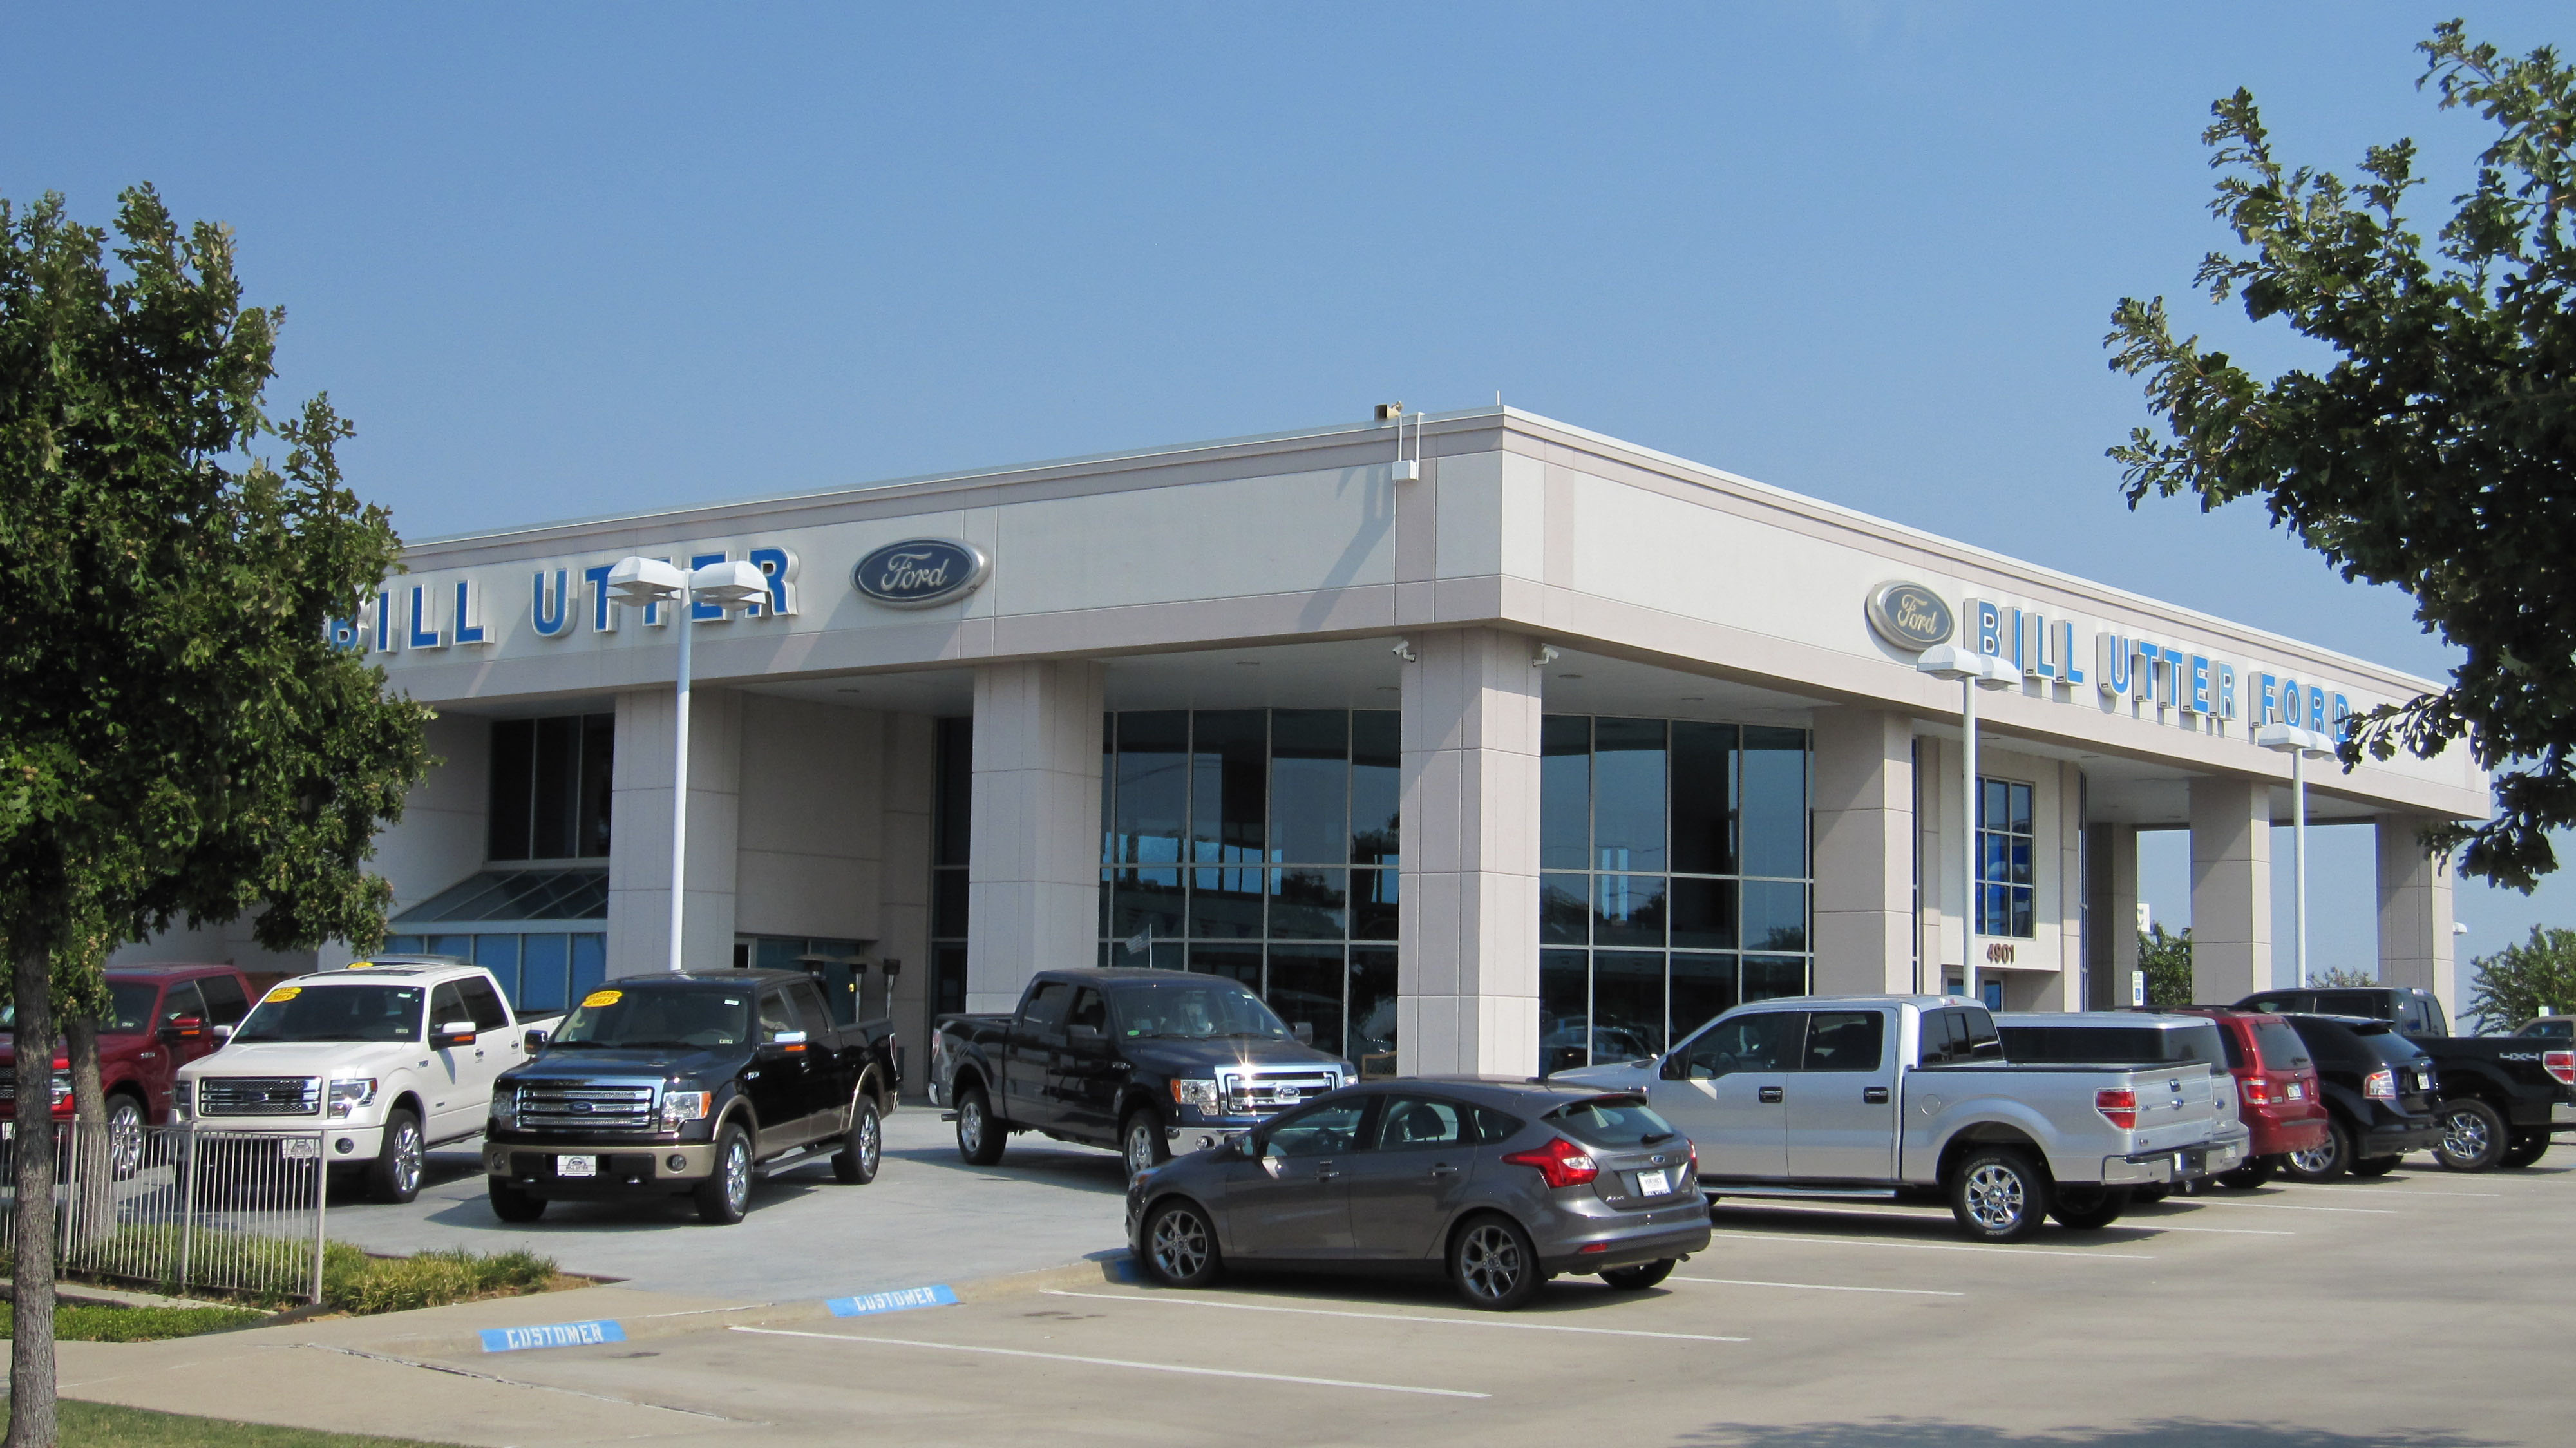 Bill Utter Ford >> Bill Utter Ford | Dallas Fort Worth Metro-Plex Roofing